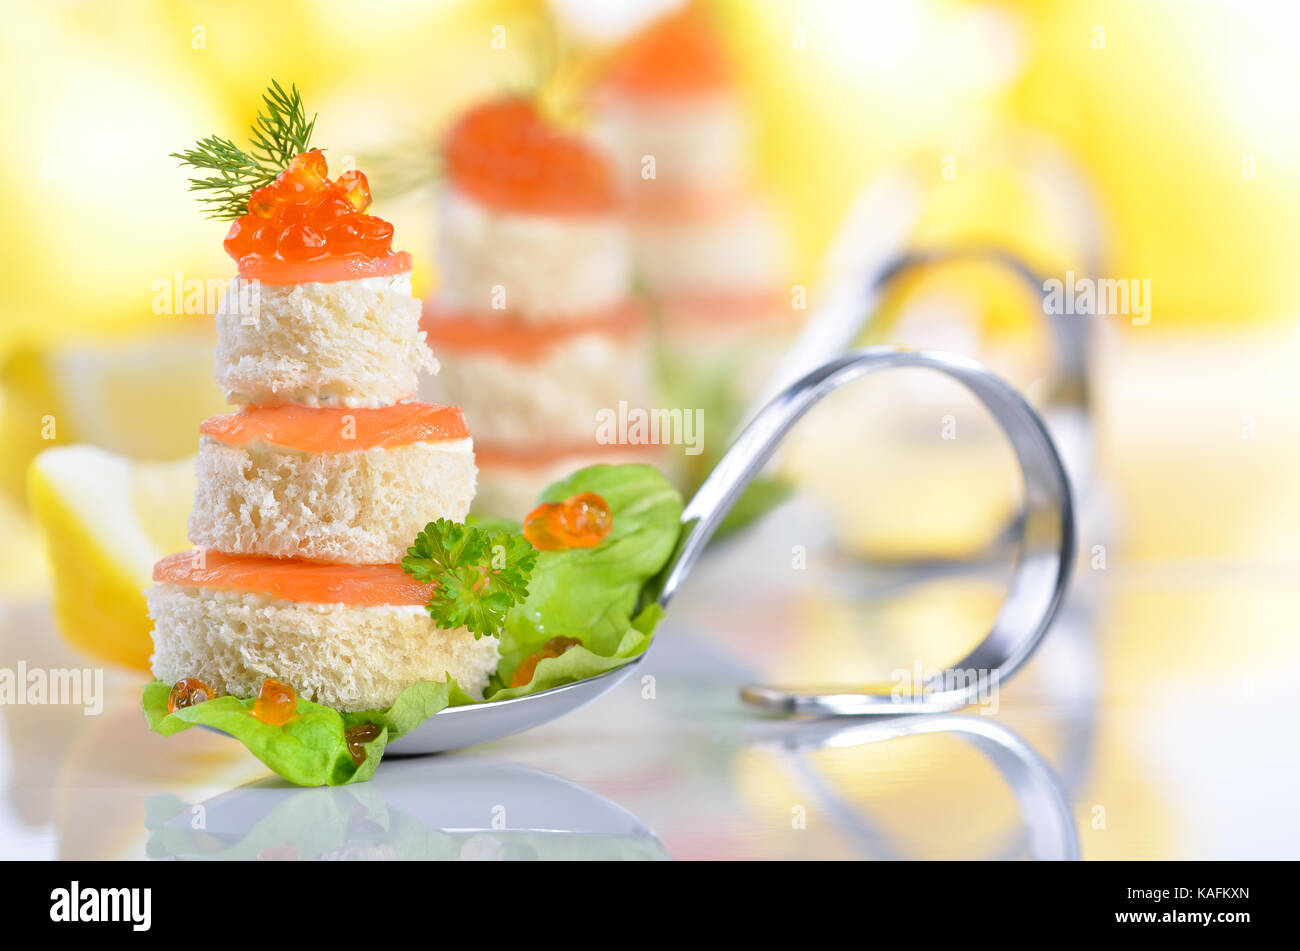 Tidbits with smoked salmon, caviar, cream cheese and toast on party spoons, lemons in the background - Stock Image